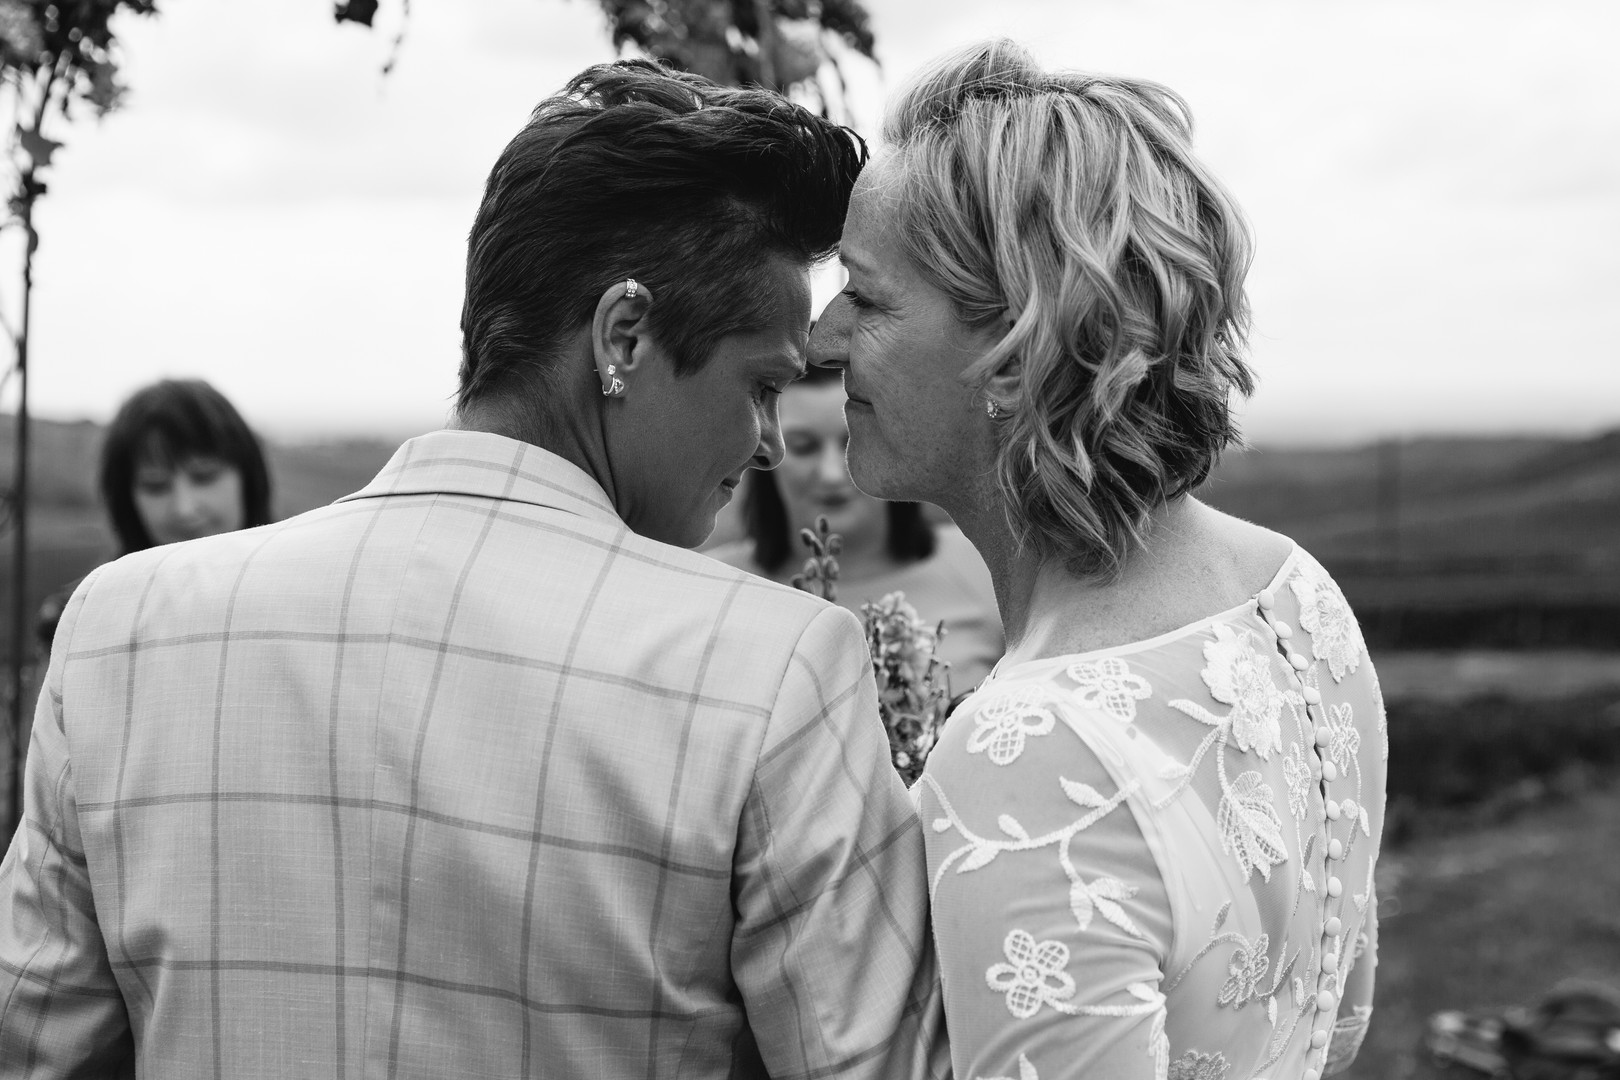 Black and white image during ceremony couple lean heads together